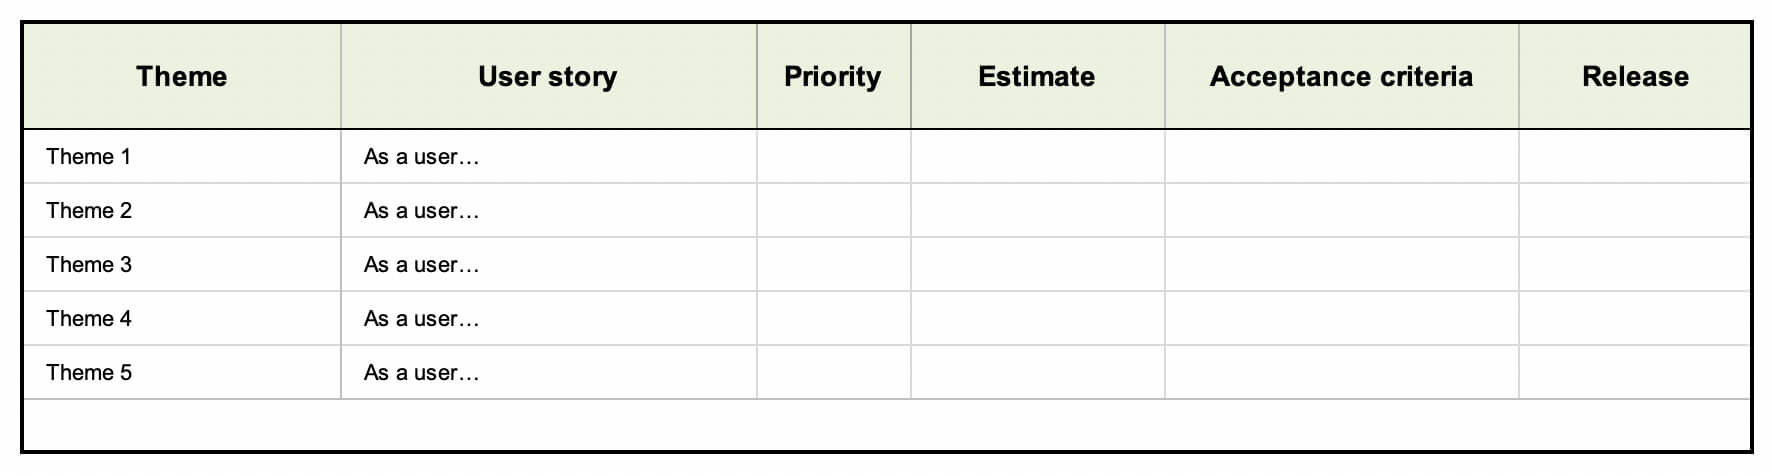 User Story Template Examples For Product Managers | Aha! in User Story Word Template